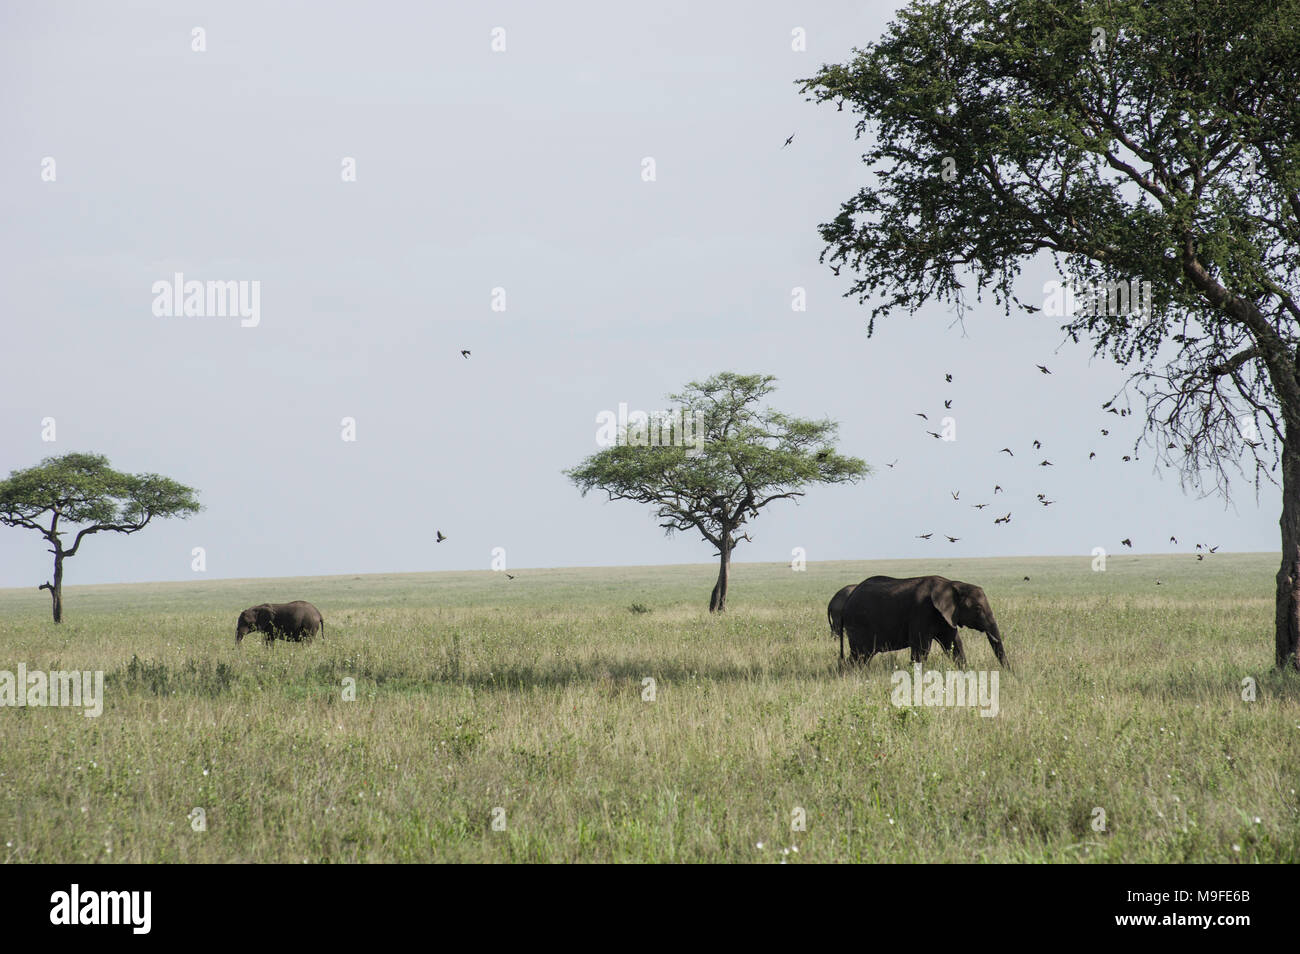 Wild African elephants under acacia trees in the serengeit national park in north tanzania on a sunny day with blue skies on the savannah - Stock Image